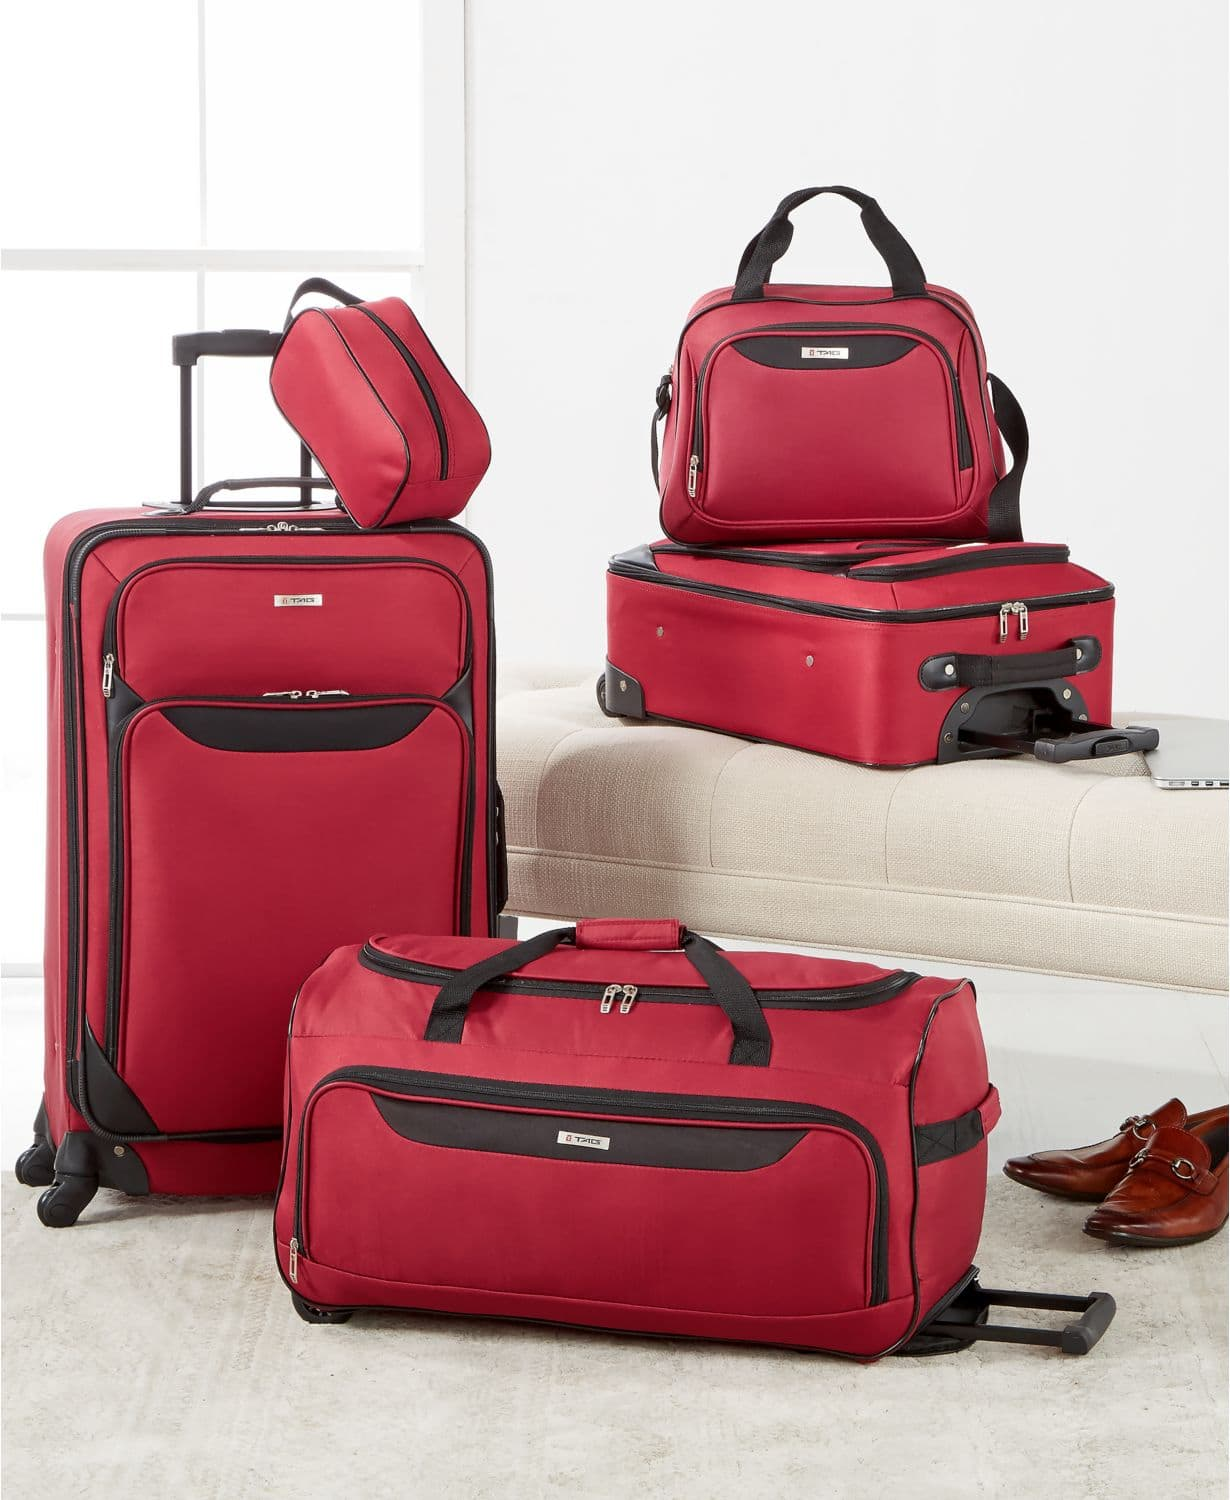 5-Piece Tag Springfield III Luggage Set (3 colors) $49.99 + Free shipping